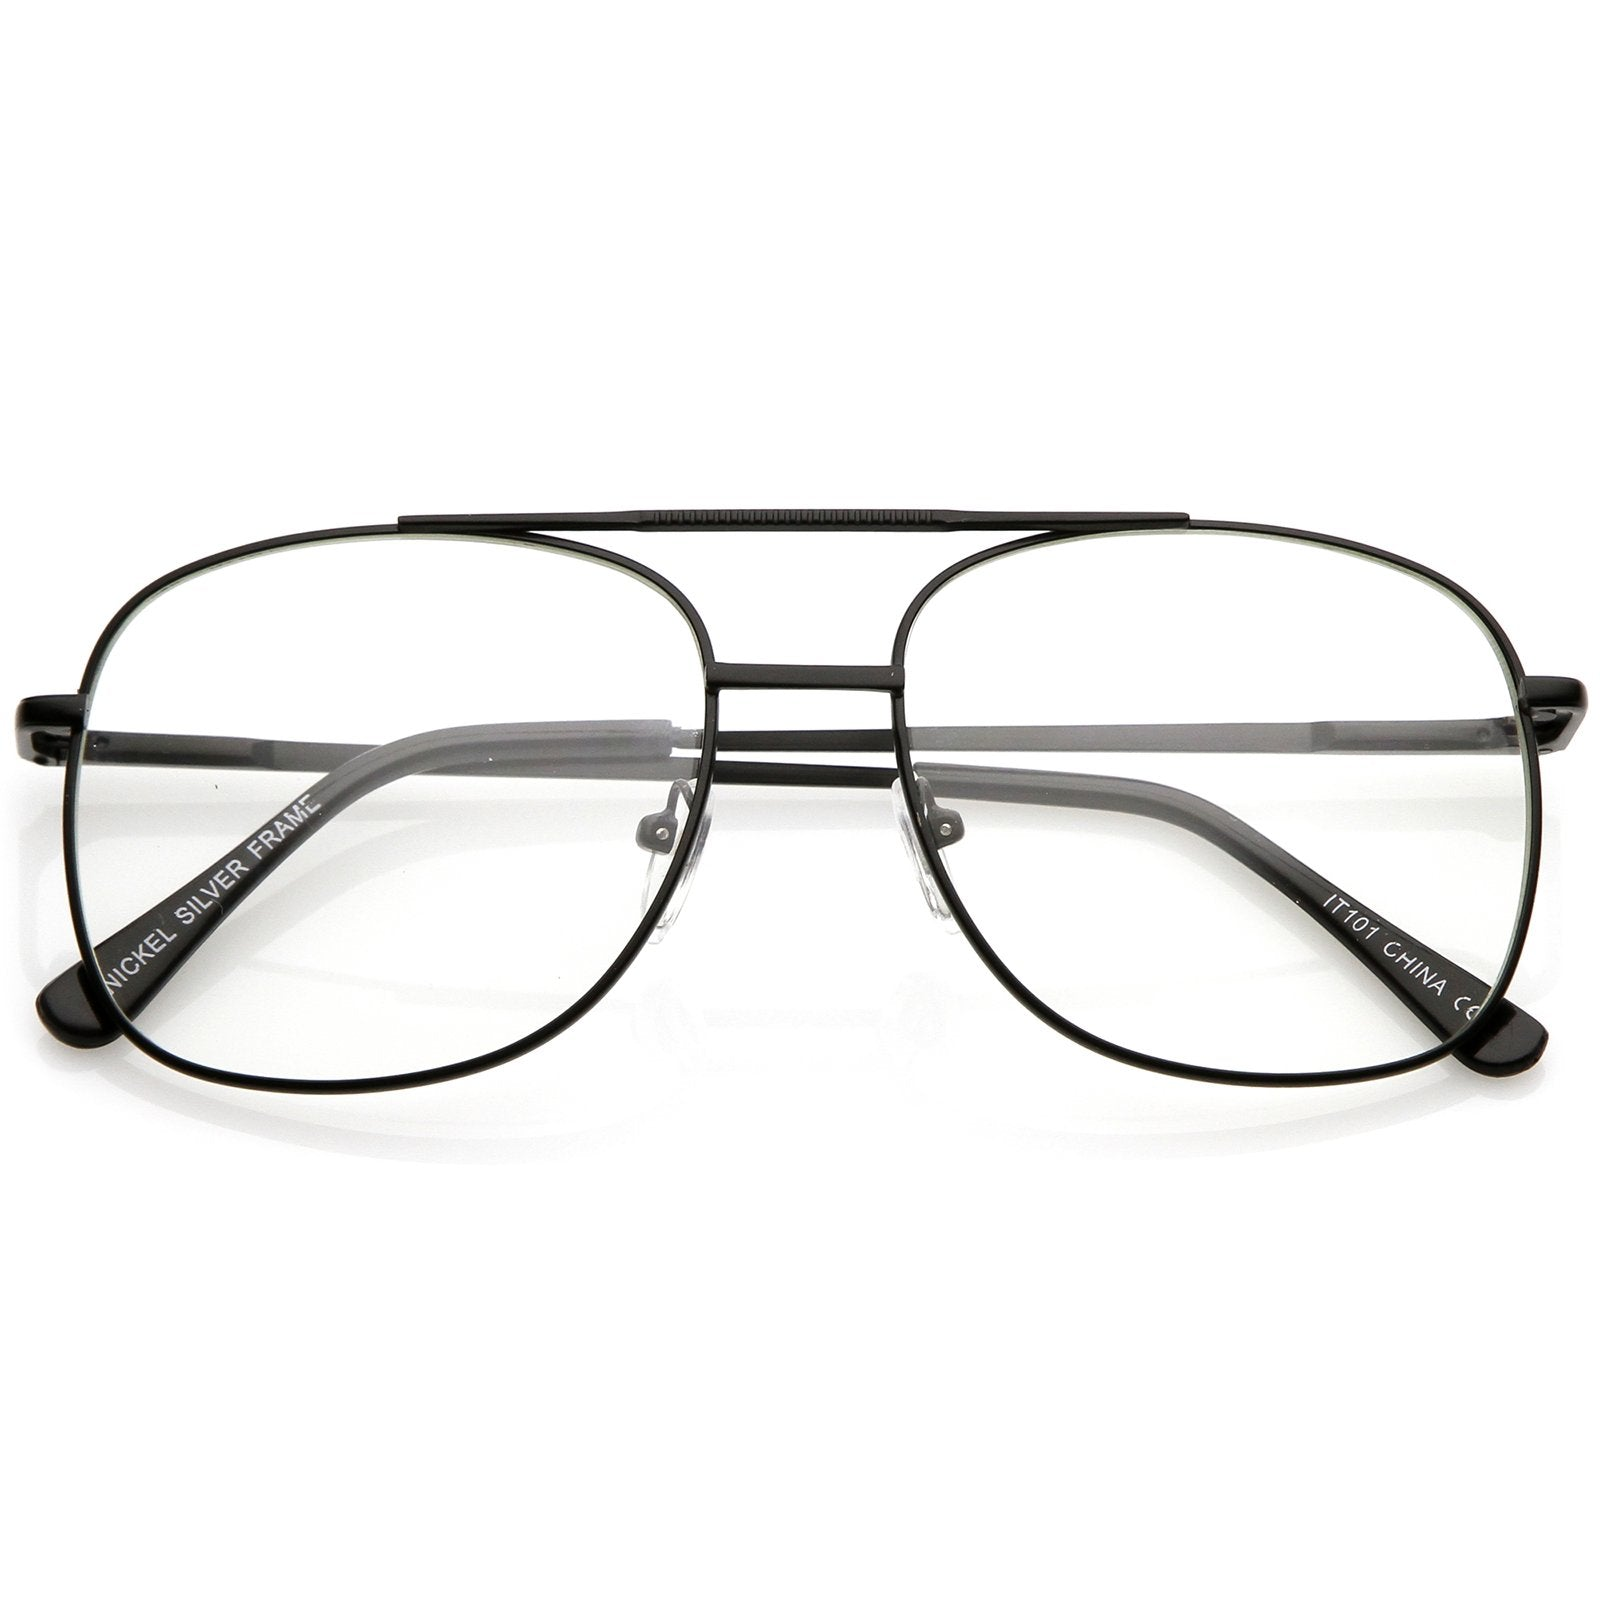 5f9f9317f377 Optical RX Clear Lens Glasses Tagged